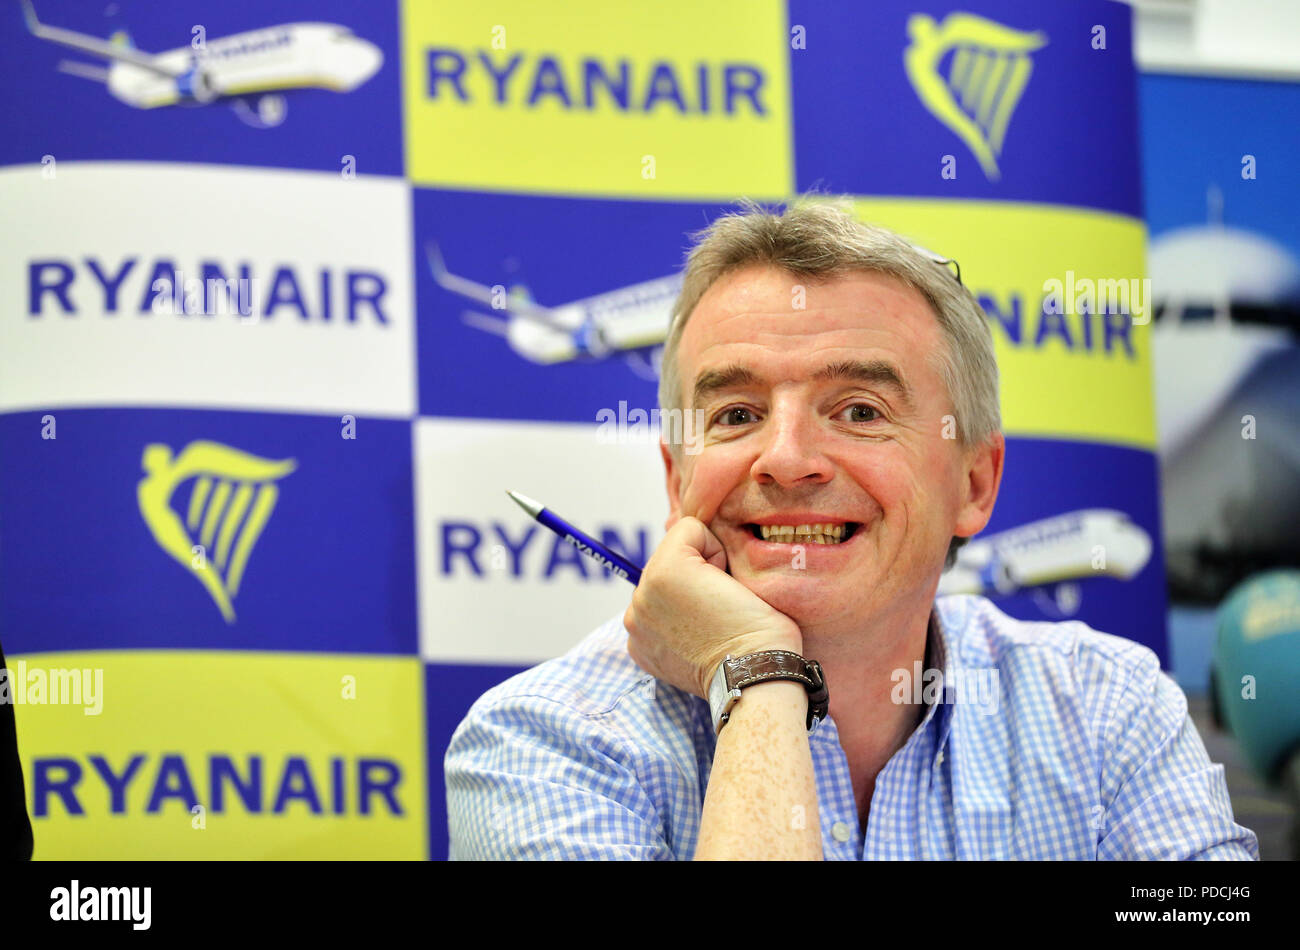 Schkeuditz, Germany. 20th Feb, 2013. Ryanair CEO Michael O'Leary smiles at a press conference at Leipzig/Halle airport in Schkeuditz, Germany, 20 February 2013. The Irish airline announced, that it wants to increase its stake at the airport. Credit: JAN WOITAS | usage worldwide/dpa/Alamy Live News Stock Photo